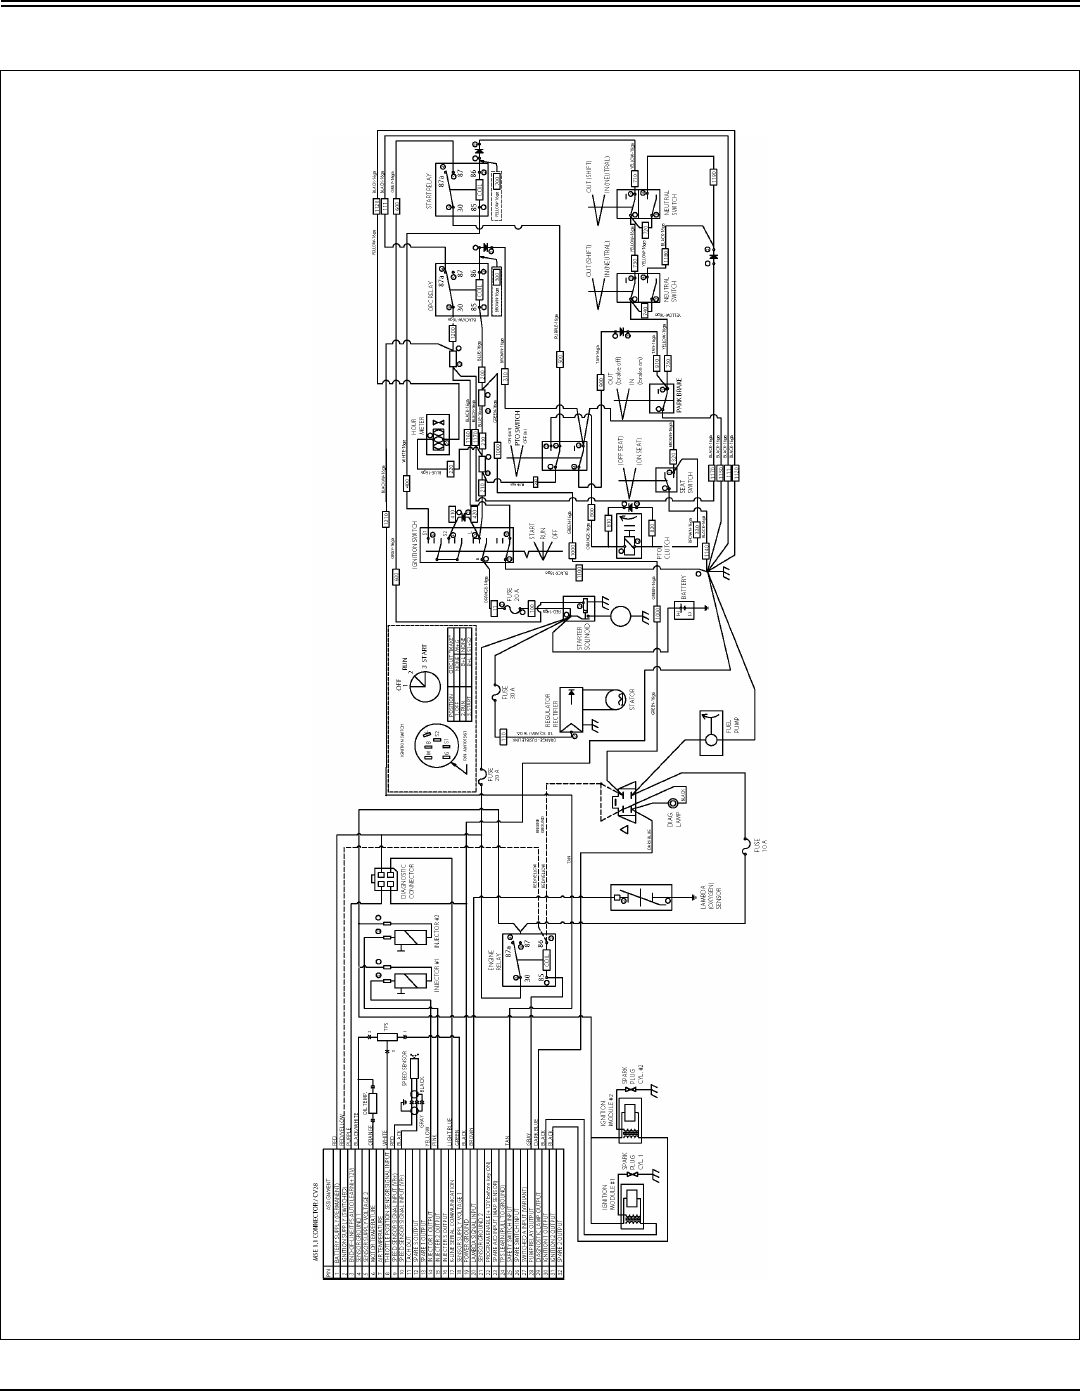 35866d91 0bb6 4261 a366 fb476fee6b2a bg3c great dane wiring schematic on great download wirning diagrams  at gsmx.co